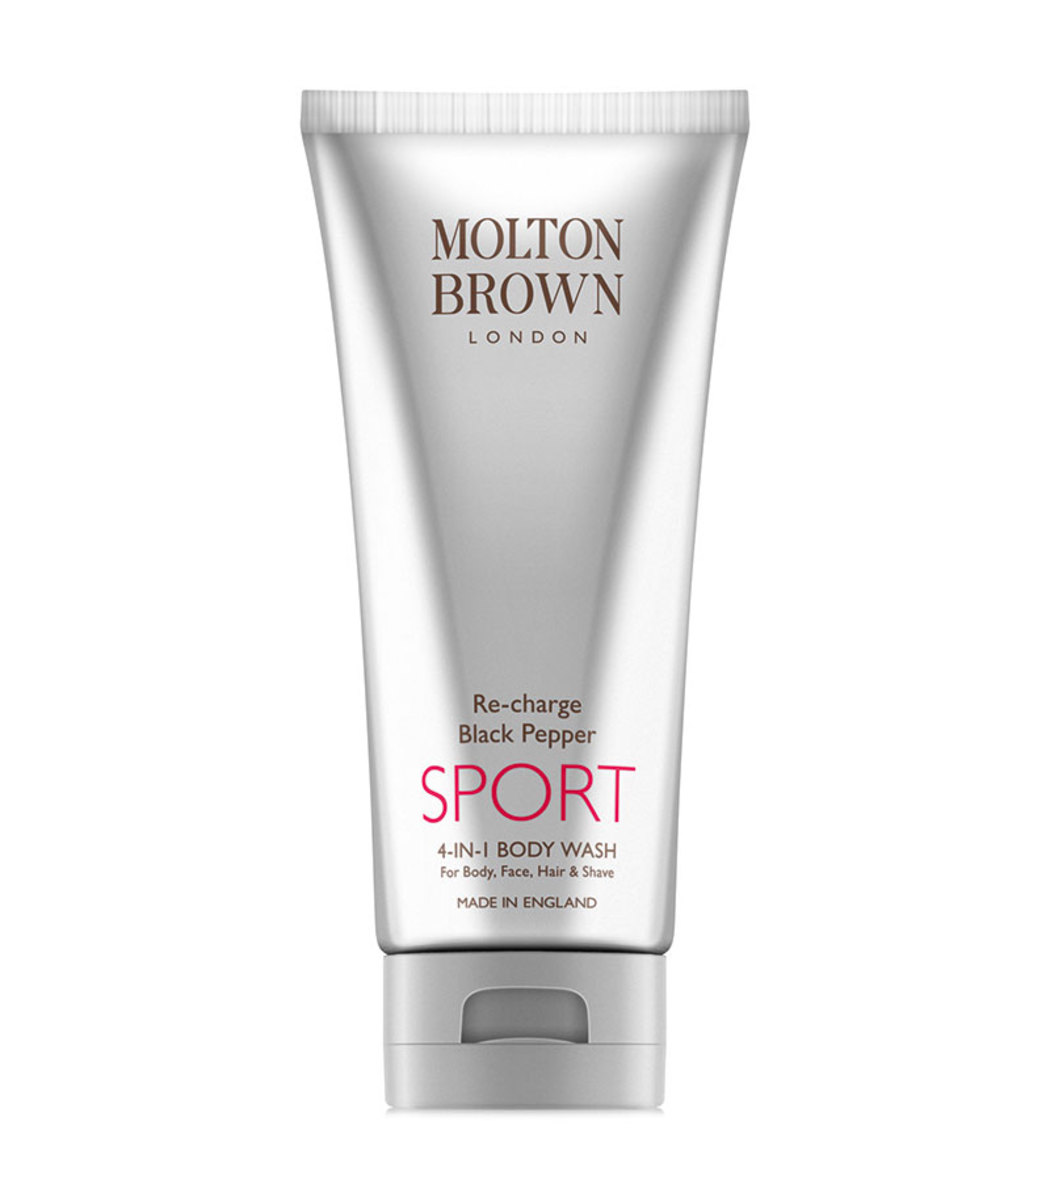 Re-charge Black Pepper Sport 4-in-1 Body Wash